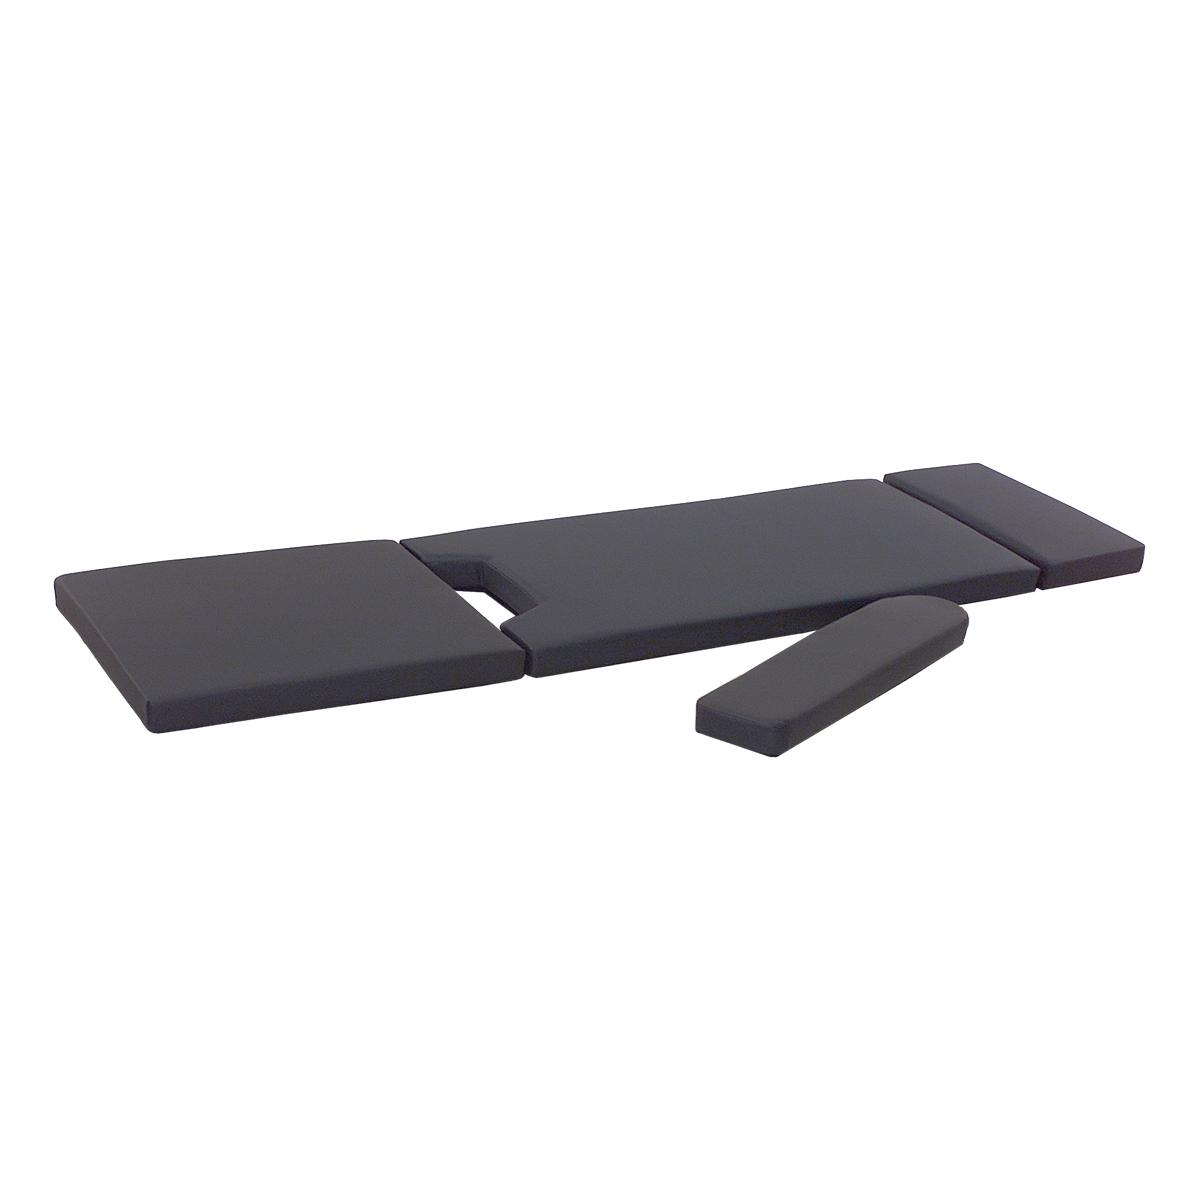 Standard & Deluxe Surface Table Pads diagonal view